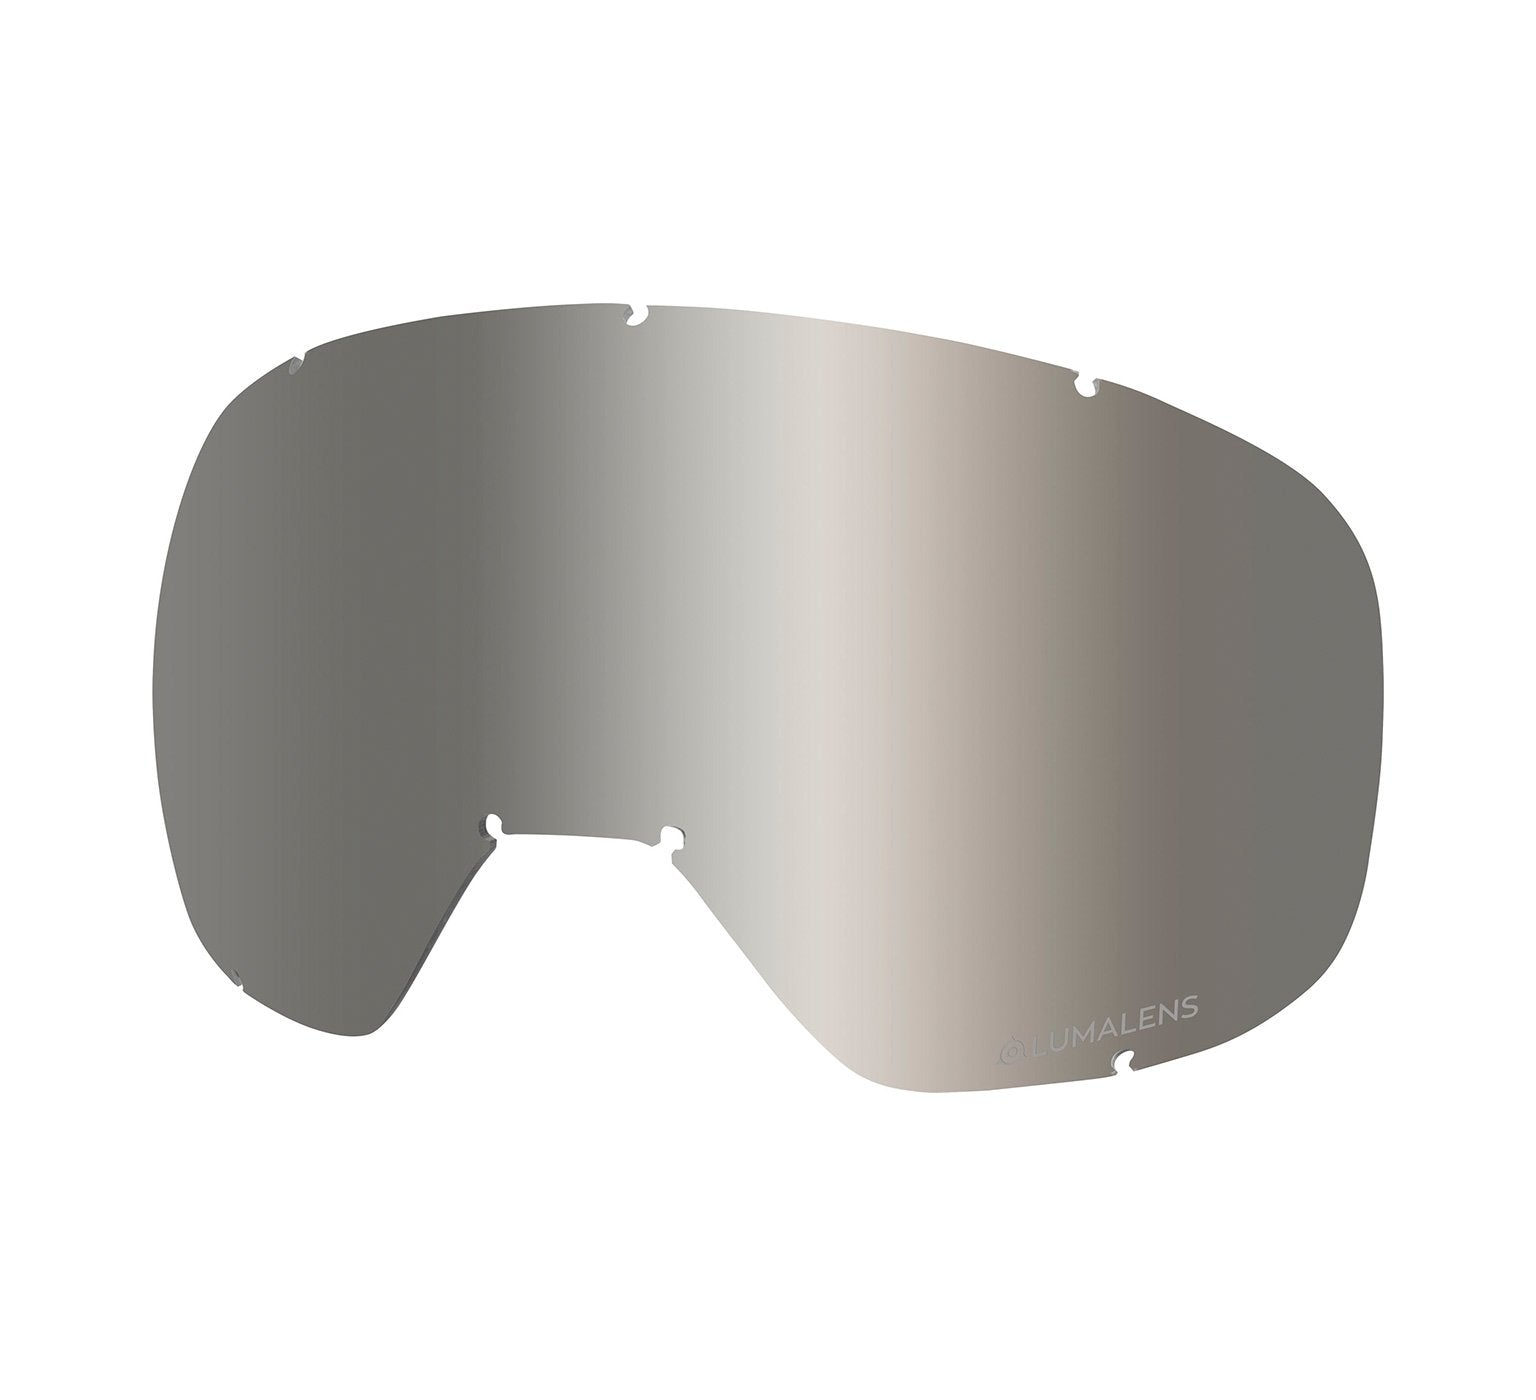 D3 OTG Replacement Lens ; Lumalens Silver Ionized